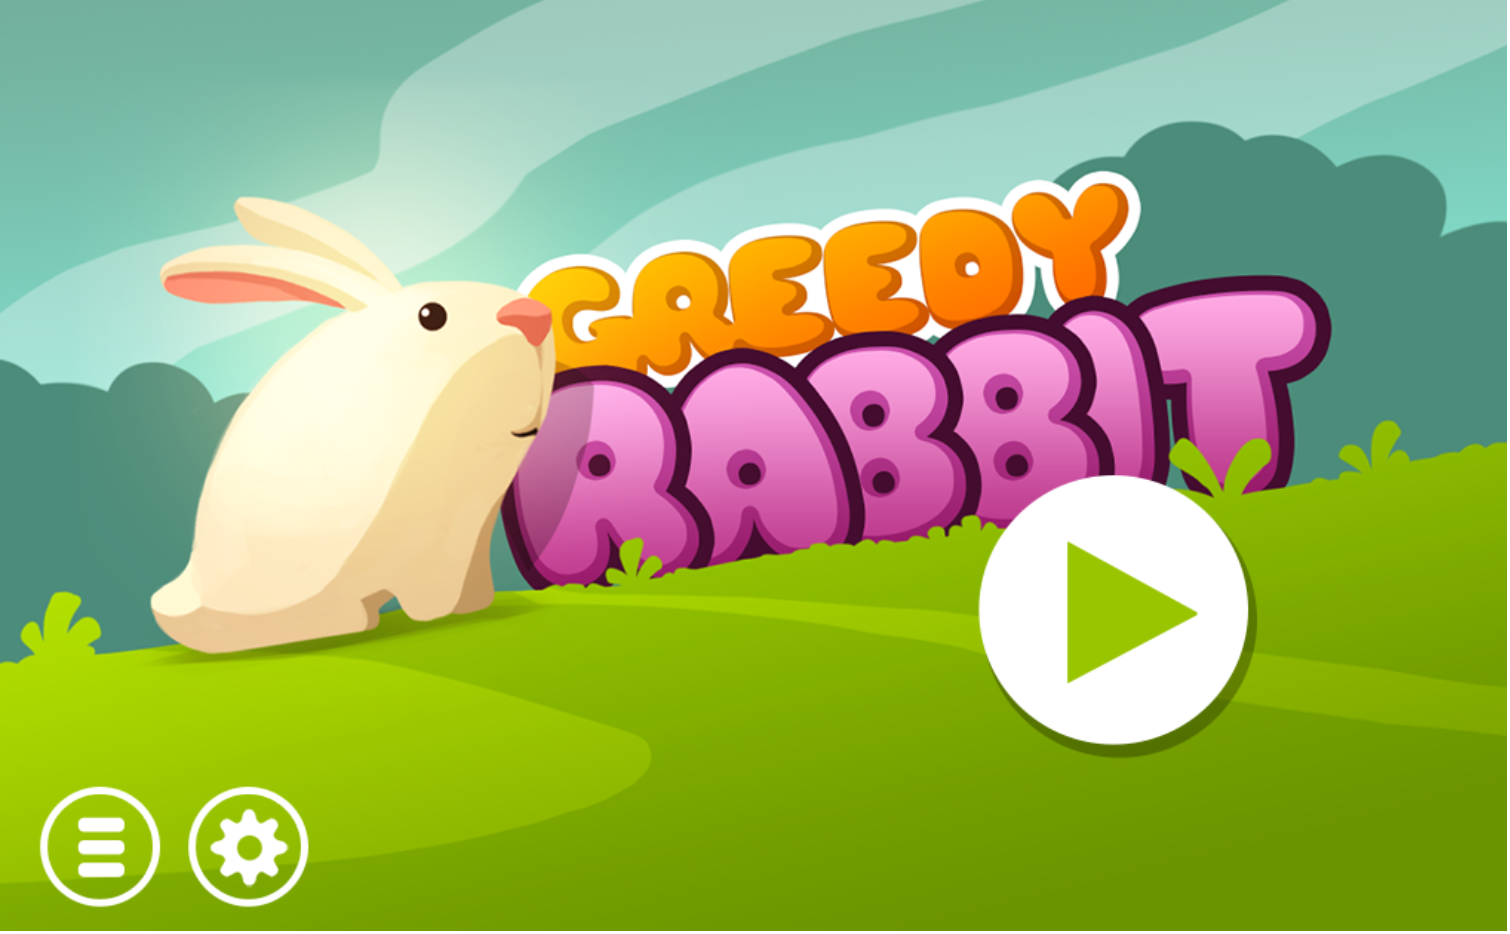 Greedy Rabbit 1